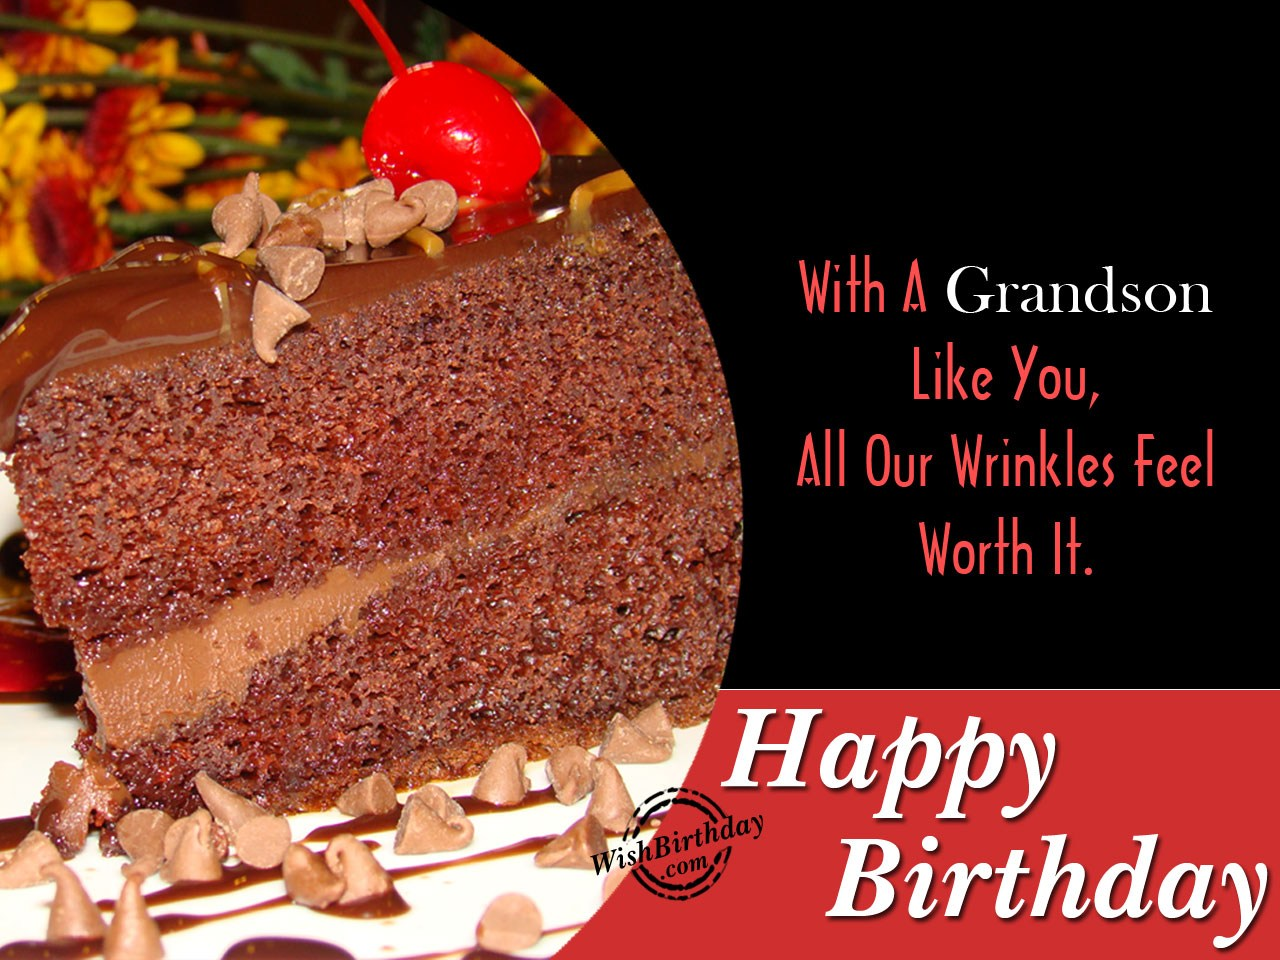 Birthday Ecards Grandson ~ Birthday wishes for grandson images pictures